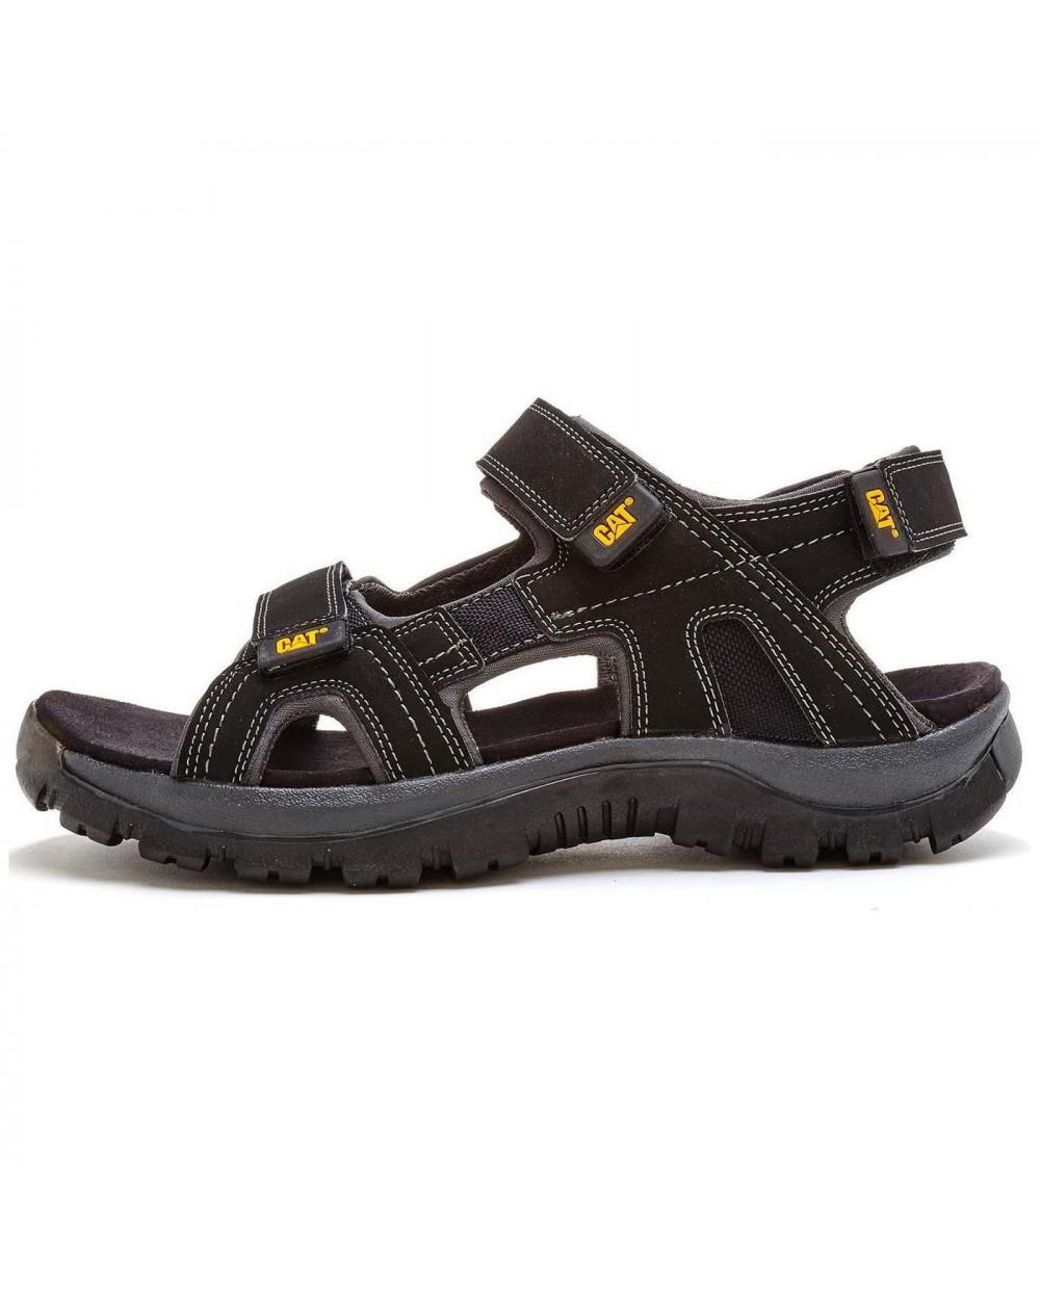 1183a2008afa2 Caterpillar Cat Giles Wide Fit Adjustable Leather Sports Walking Sandals in  Black for Men - Lyst